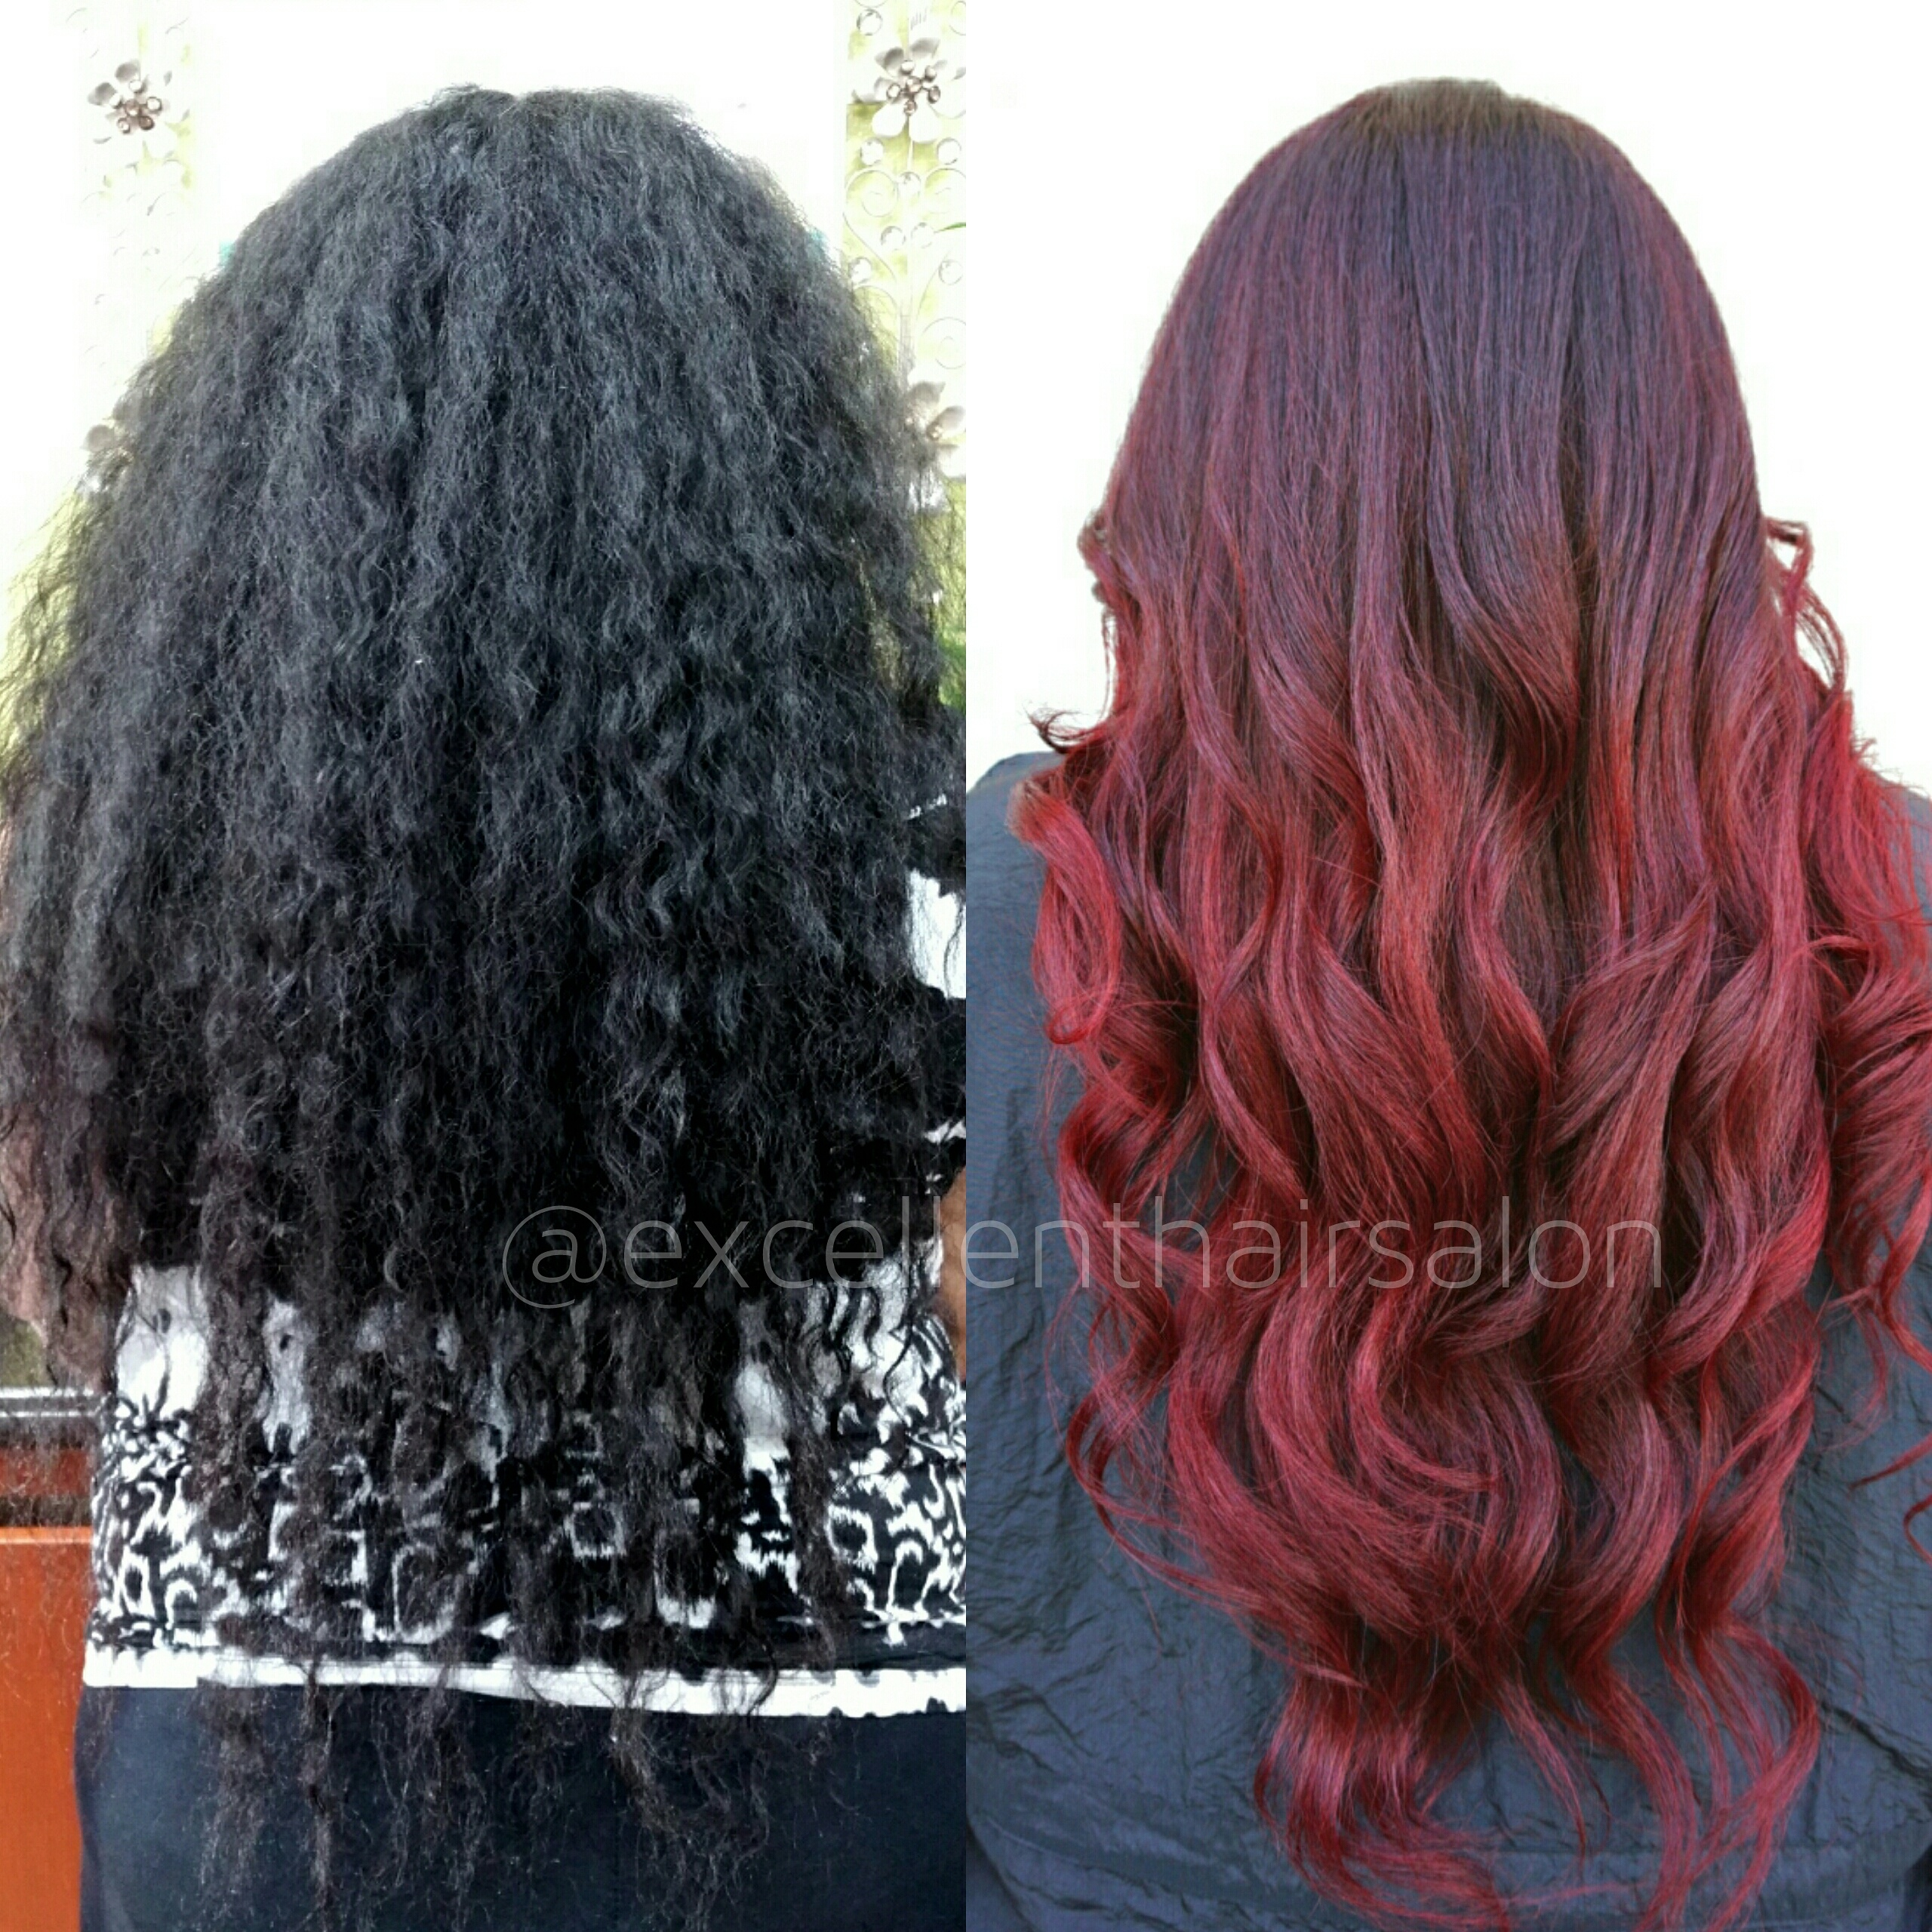 From Virgin Hair to Cherry Red